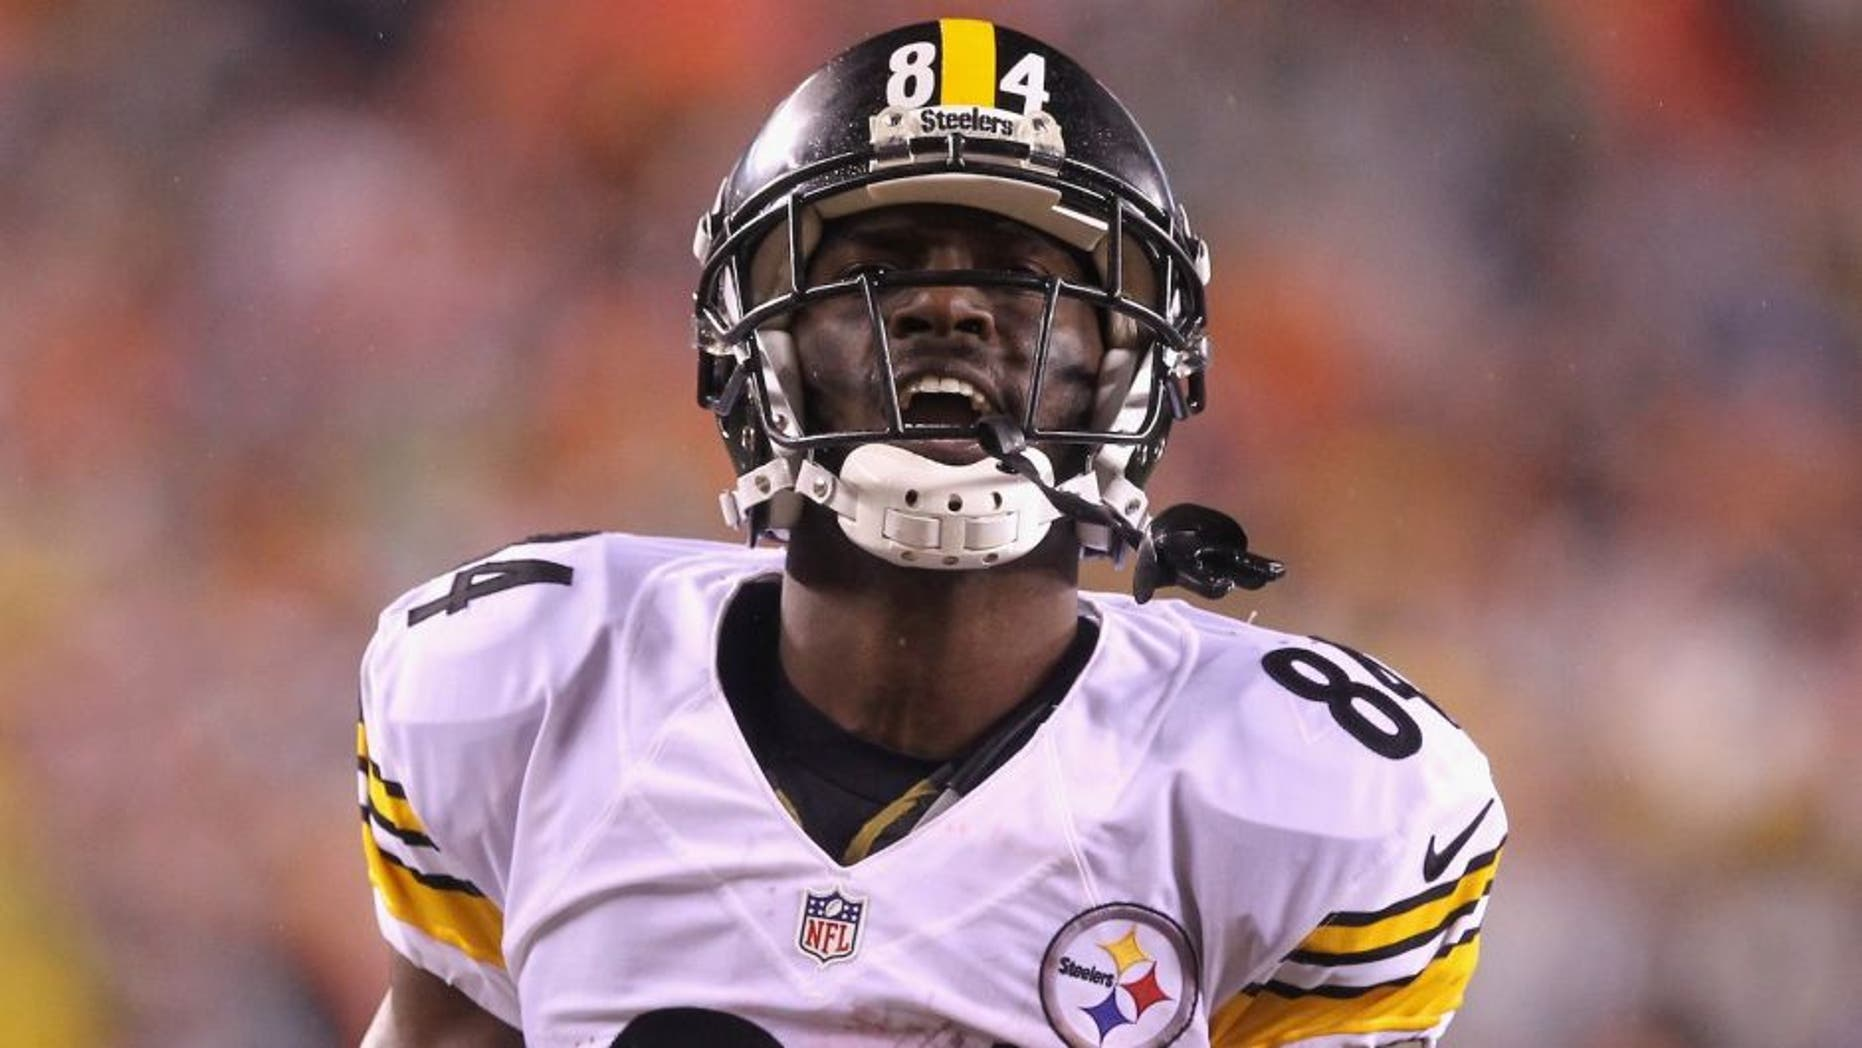 CINCINNATI, OH - JANUARY 09: Antonio Brown #84 of the Pittsburgh Steelers reacts in the second half against the Cincinnati Bengals during the AFC Wild Card Playoff game at Paul Brown Stadium on January 9, 2016 in Cincinnati, Ohio. (Photo by Dylan Buell/Getty Images)